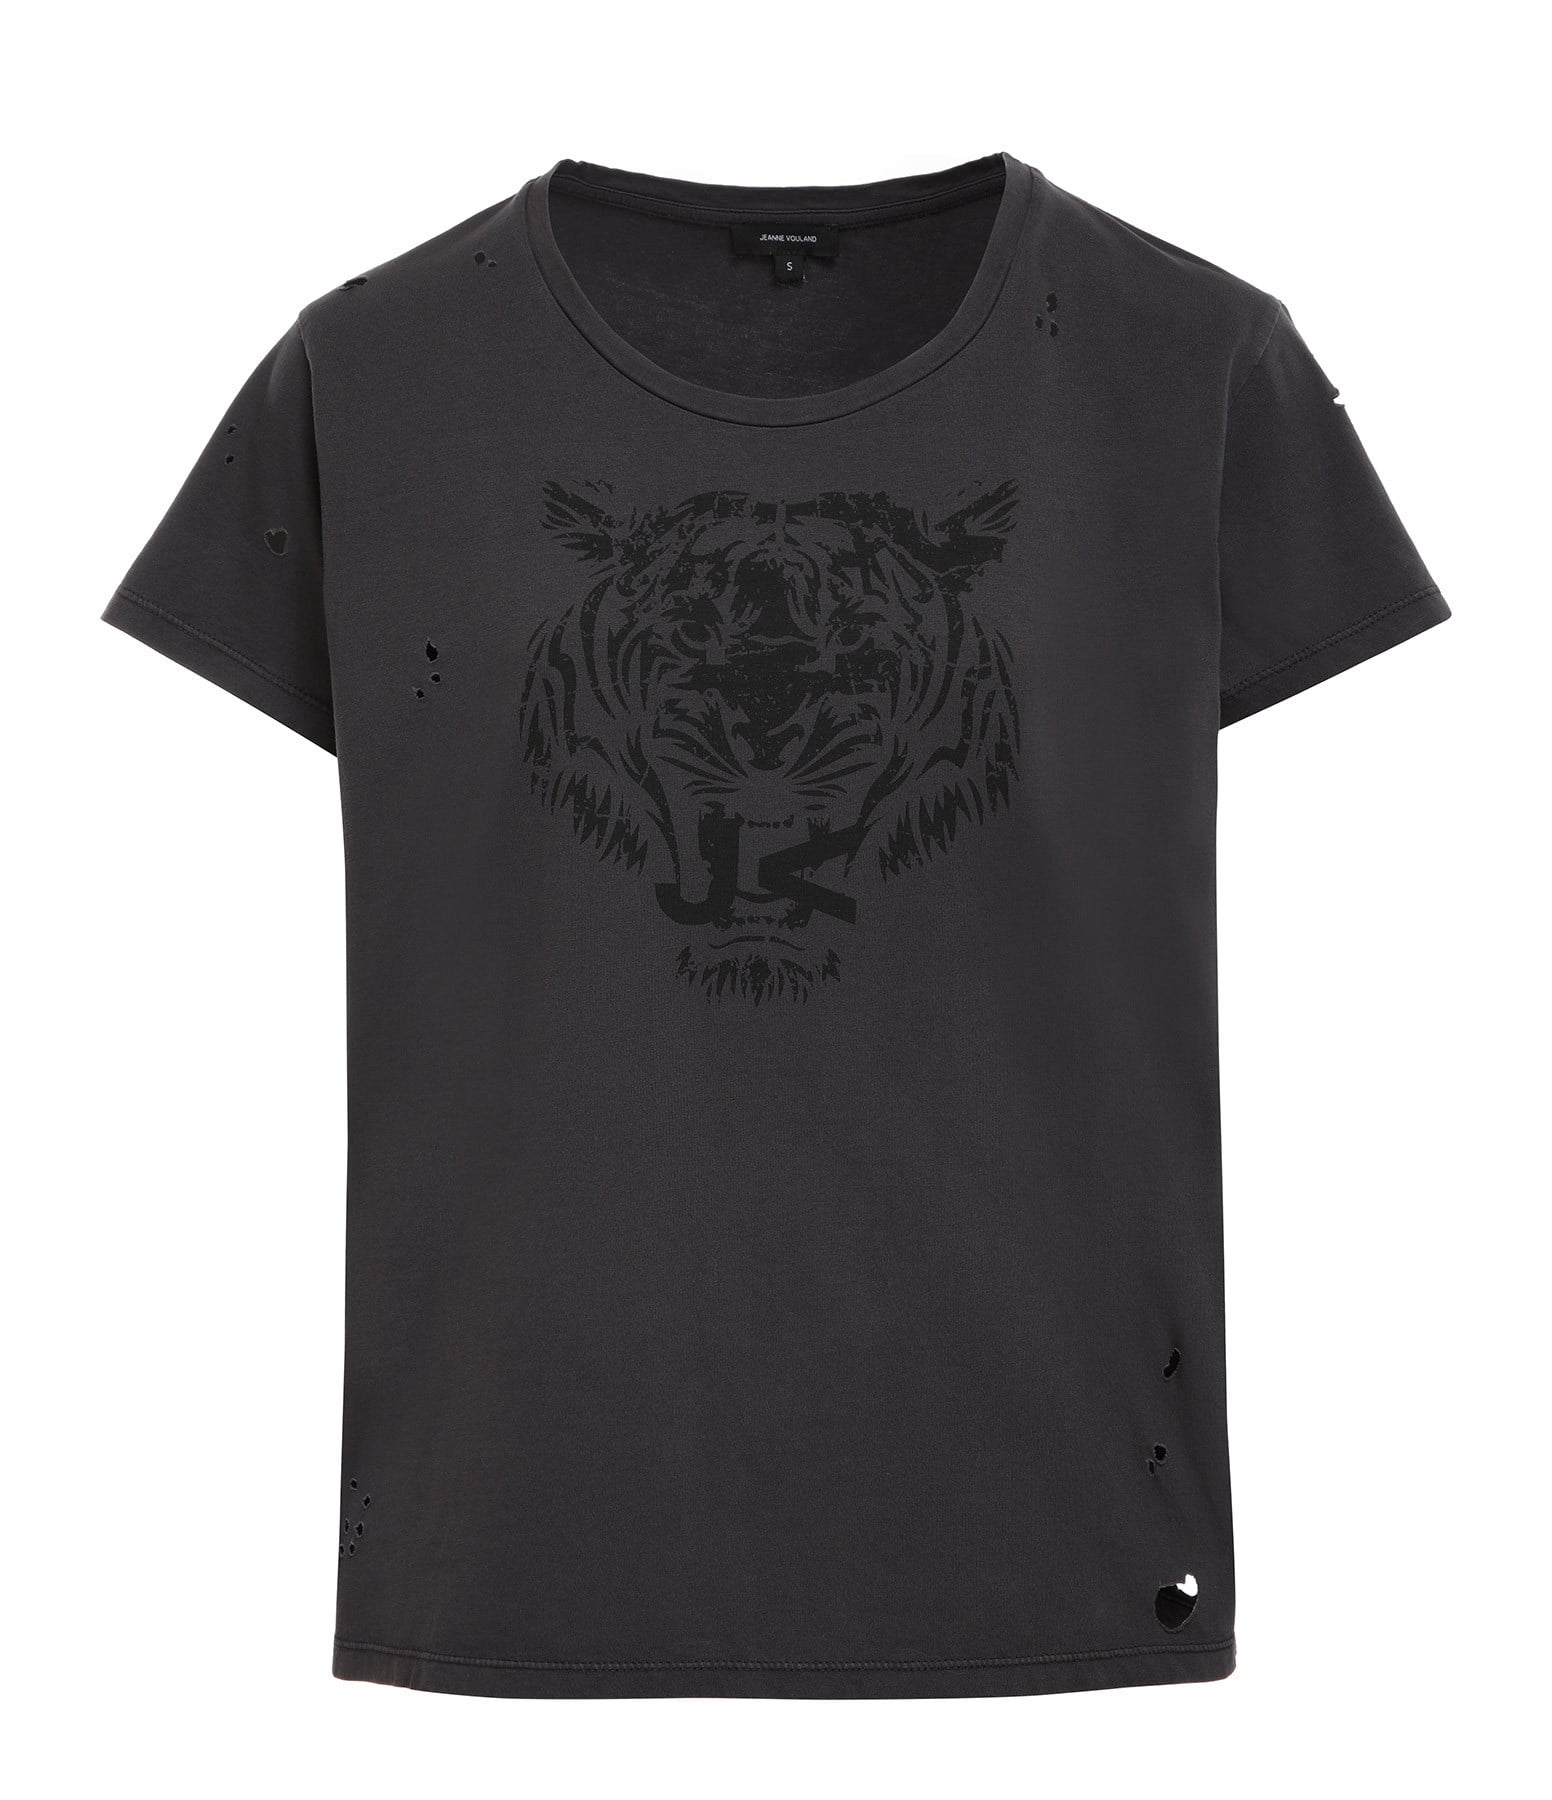 JEANNE VOULAND - Tee-shirt Ermes Destroy Coton Anthracite